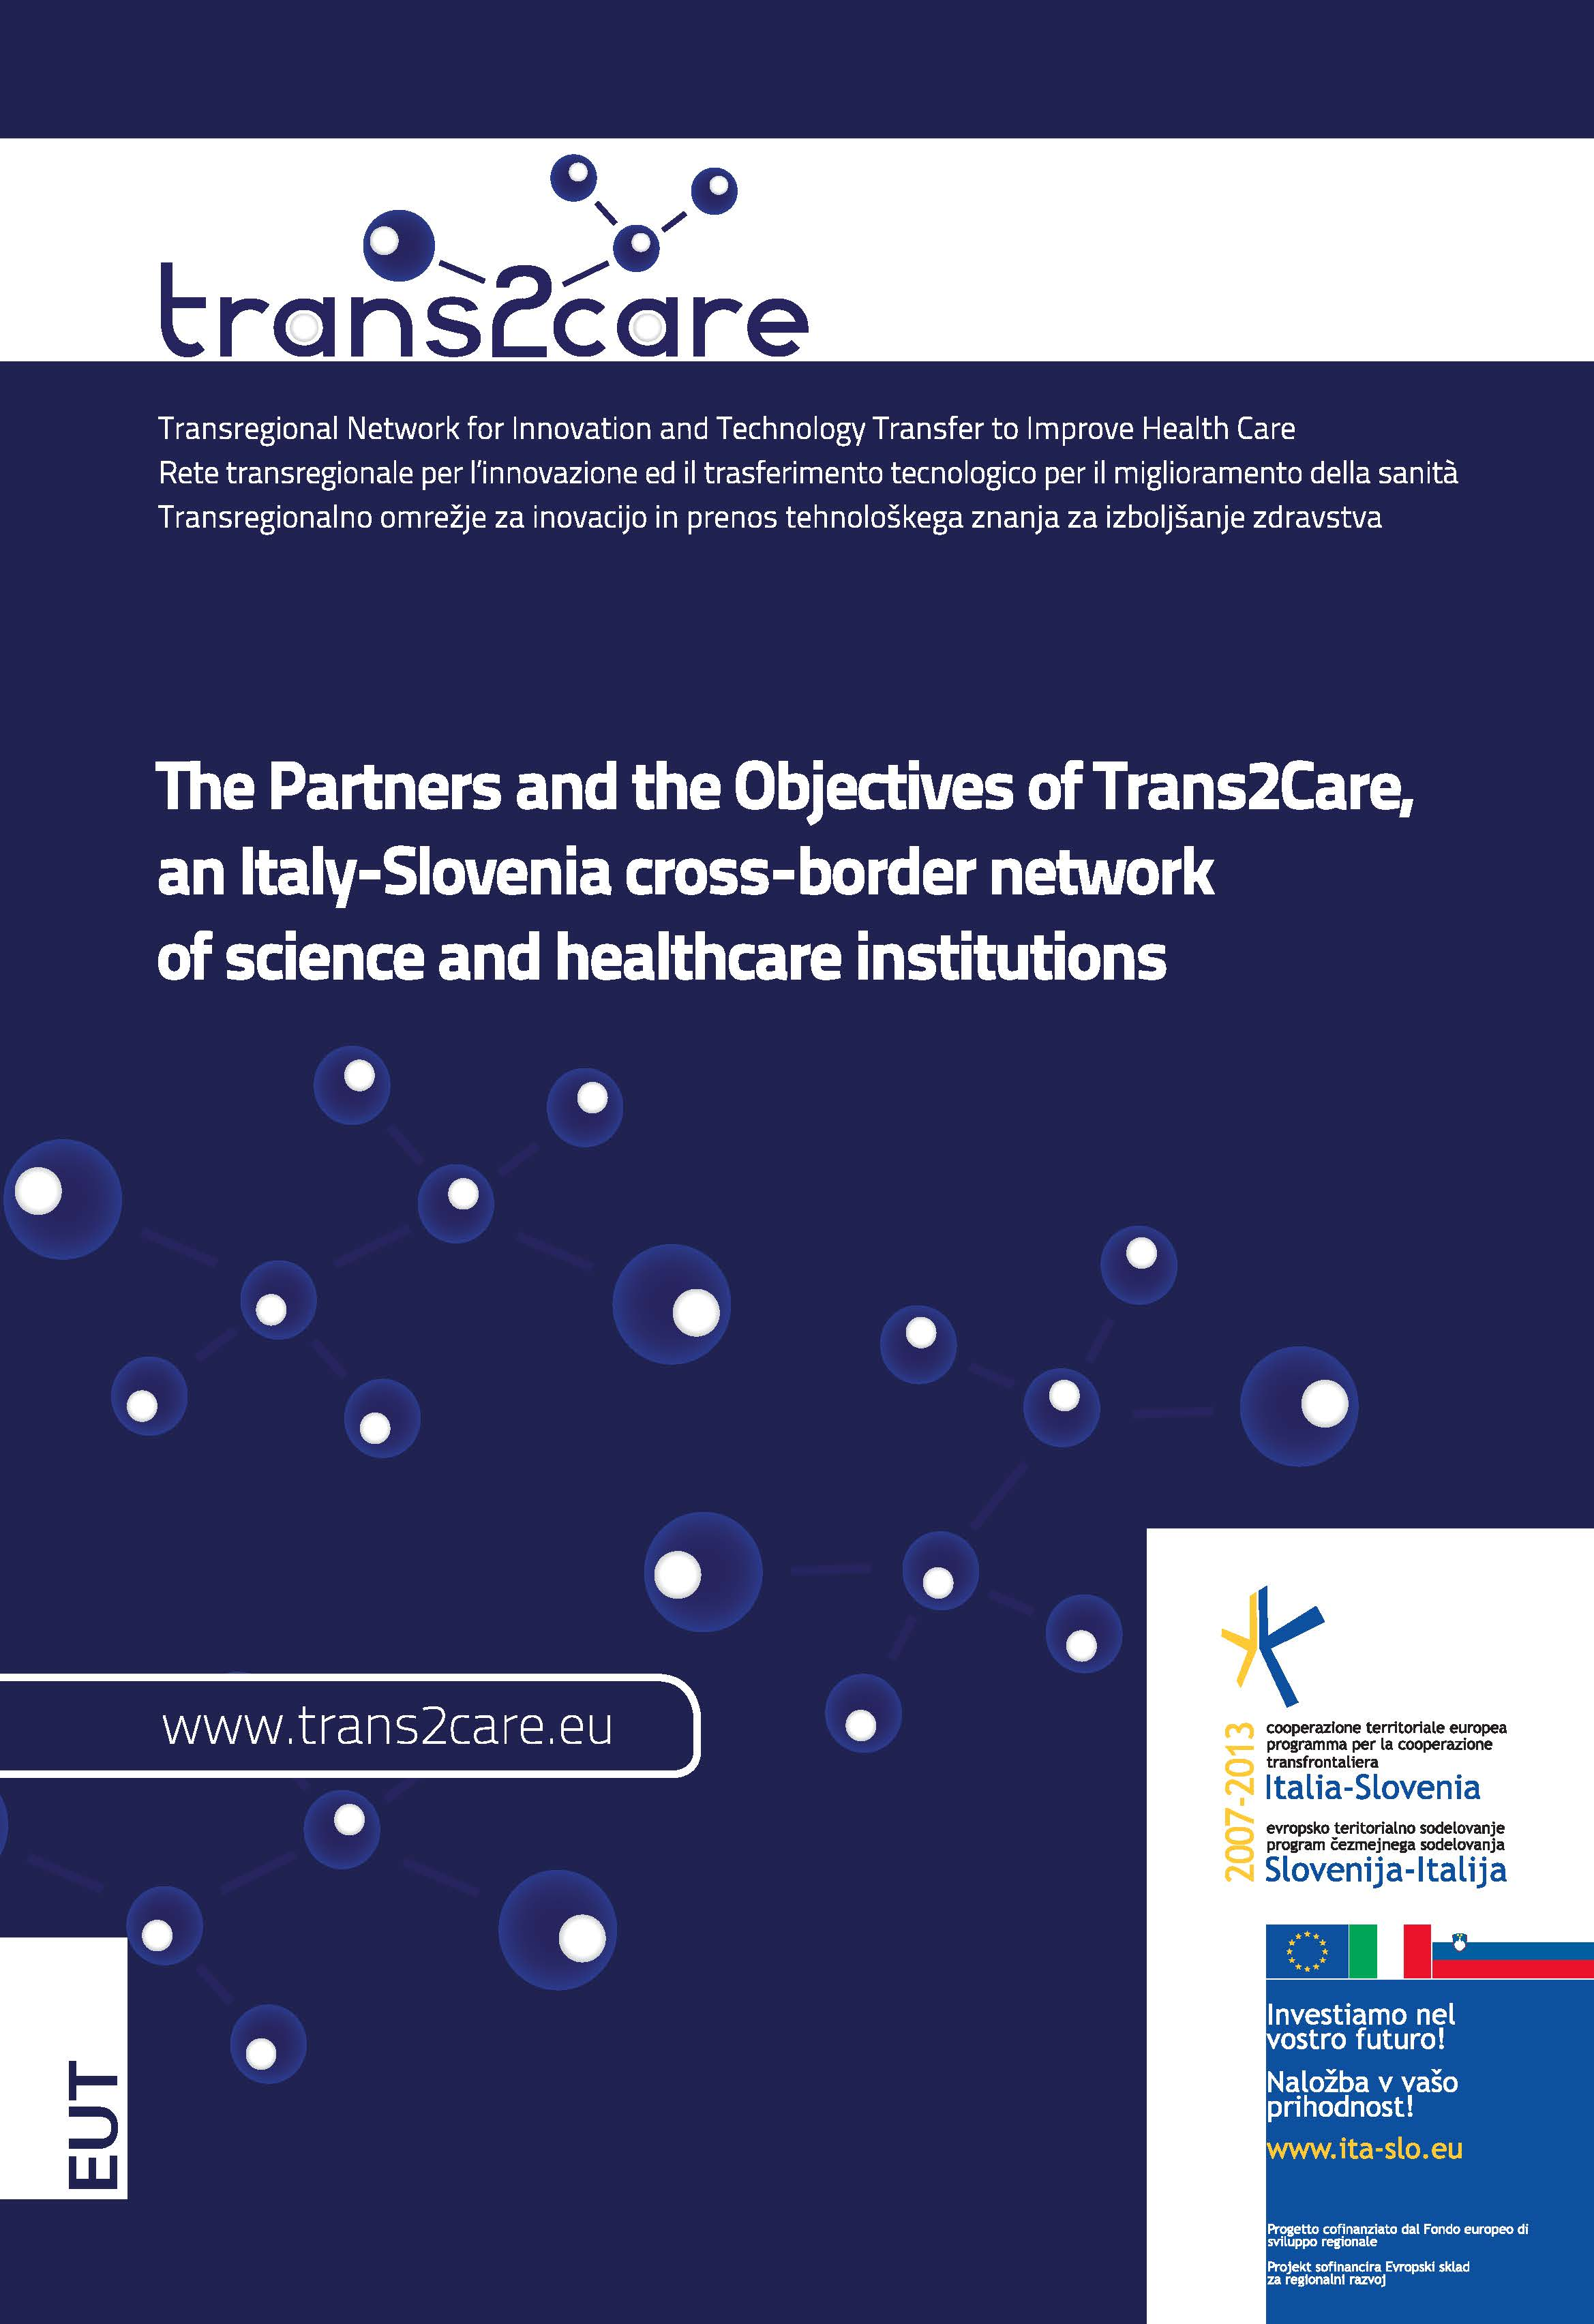 Trans2Care. The Partners and the Objectives of Trans2Care, an Italy-Slovenia cross-border network of science and healthcare institutions